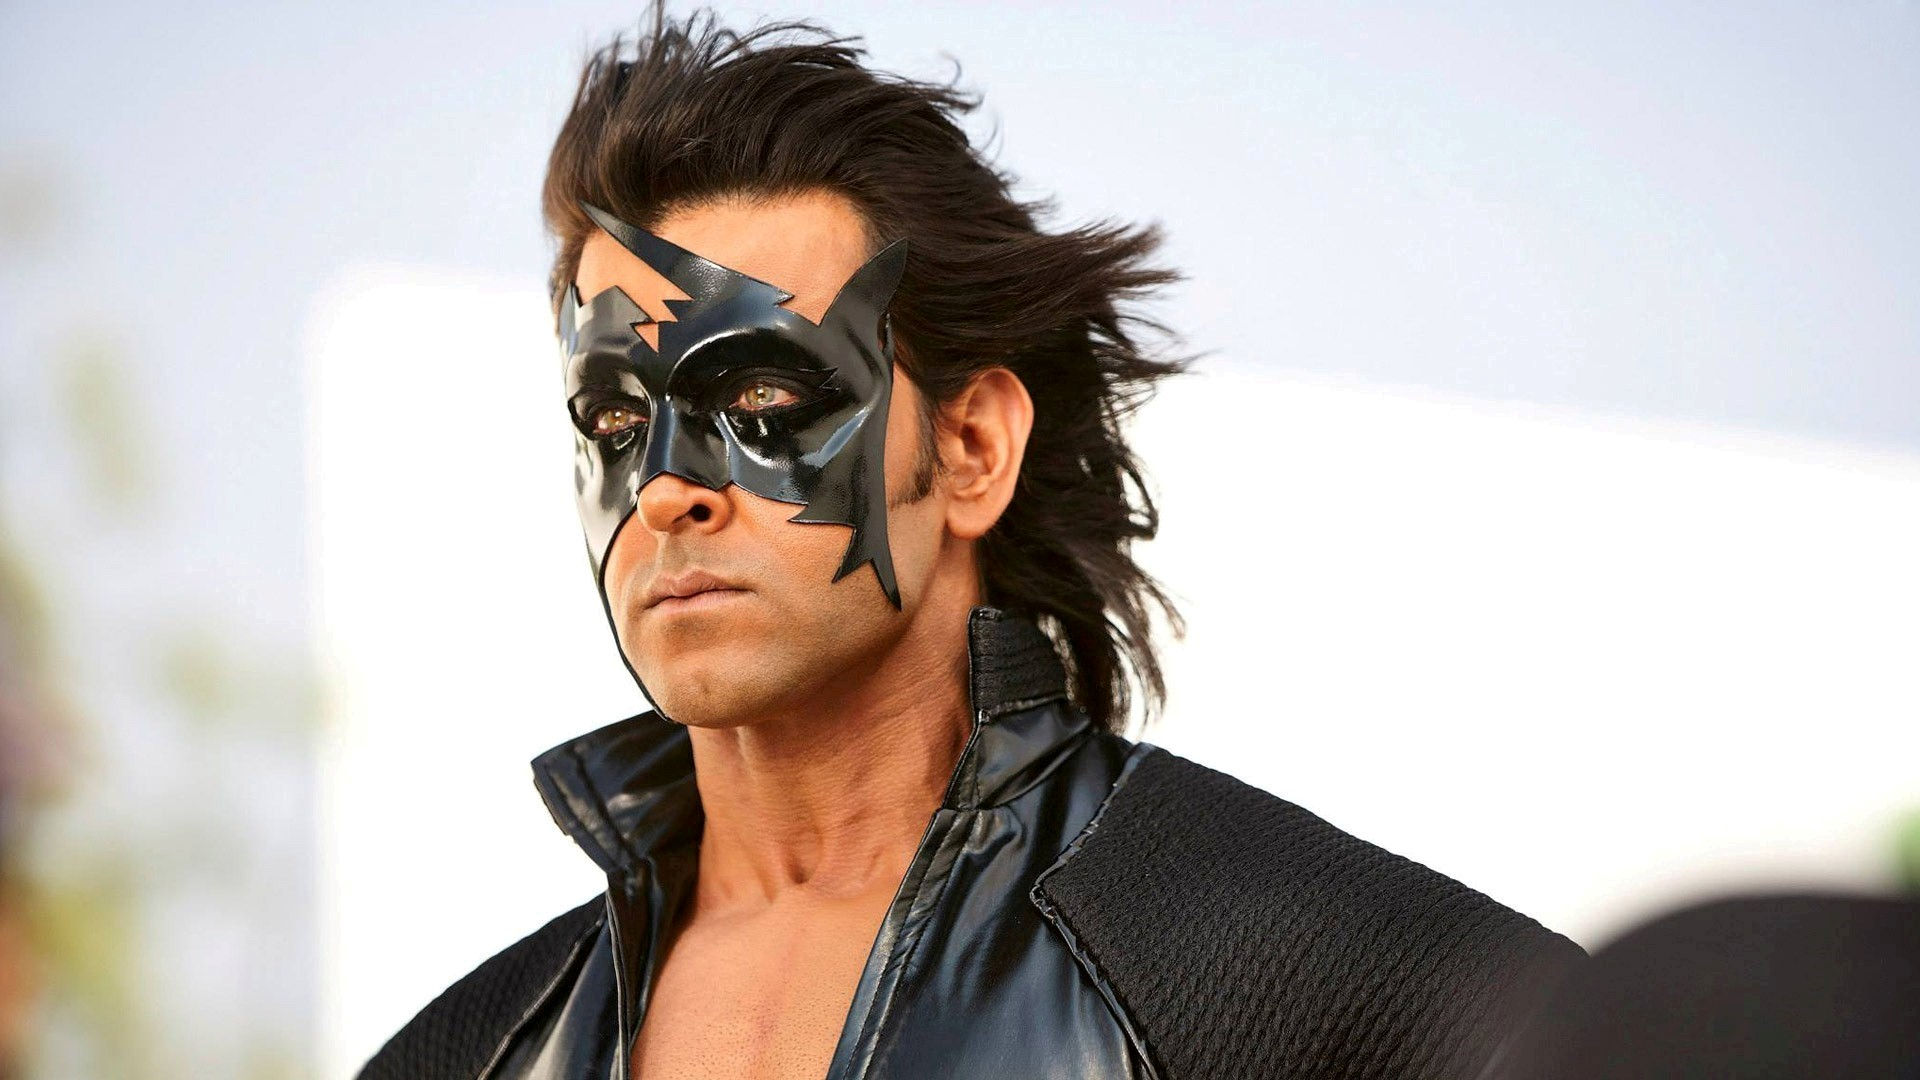 download hrithik roshan wallpapers Best of Movie Krrish 3 Hrithik Roshan Wallpaper